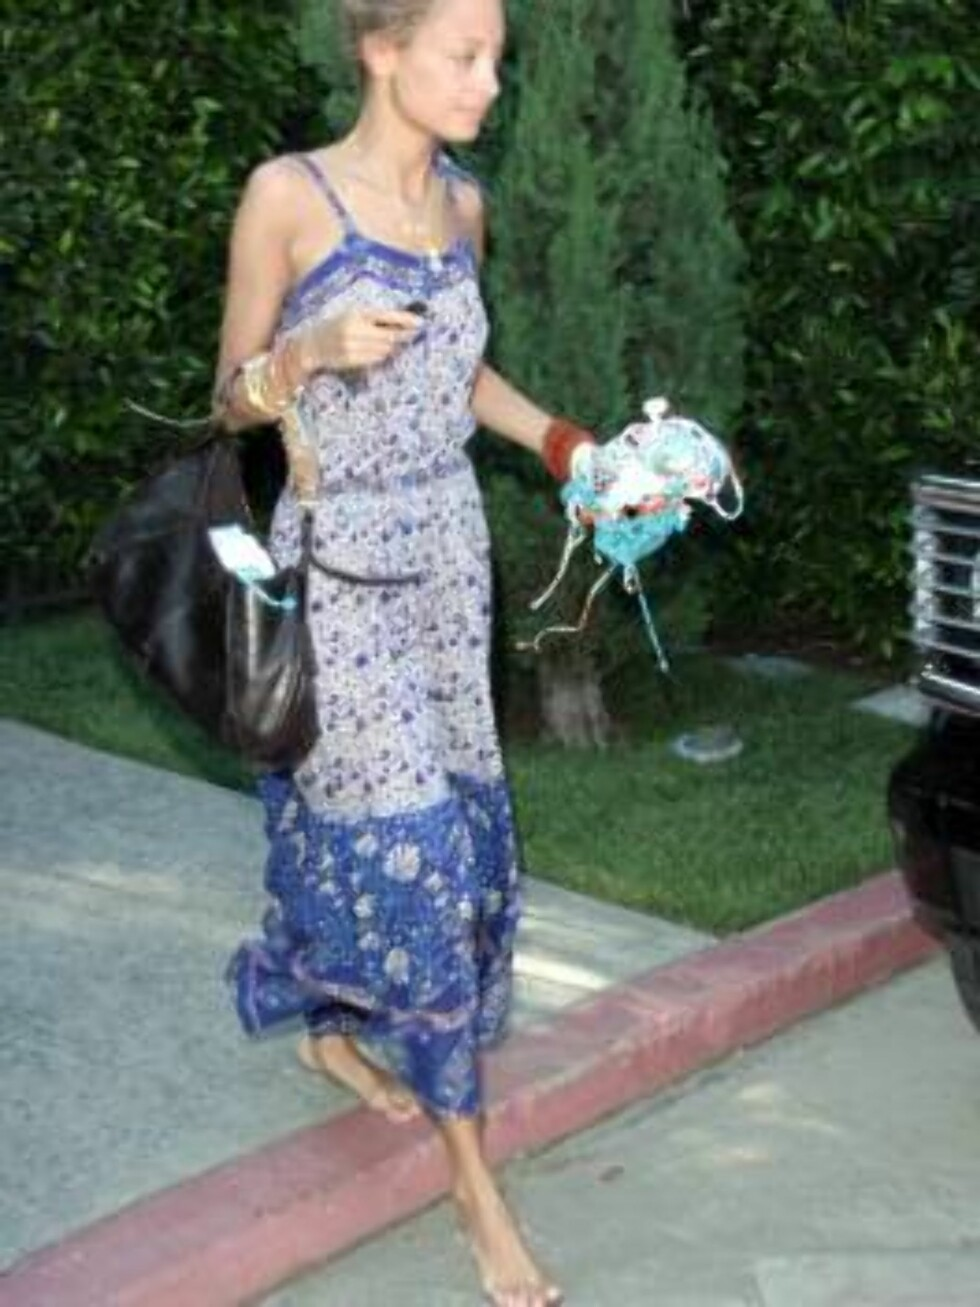 Nicole Richie leaving a friend's house barefoot june 3, 2006 X17agency exclusive / ALL OVER PRESS Foto: All Over Press